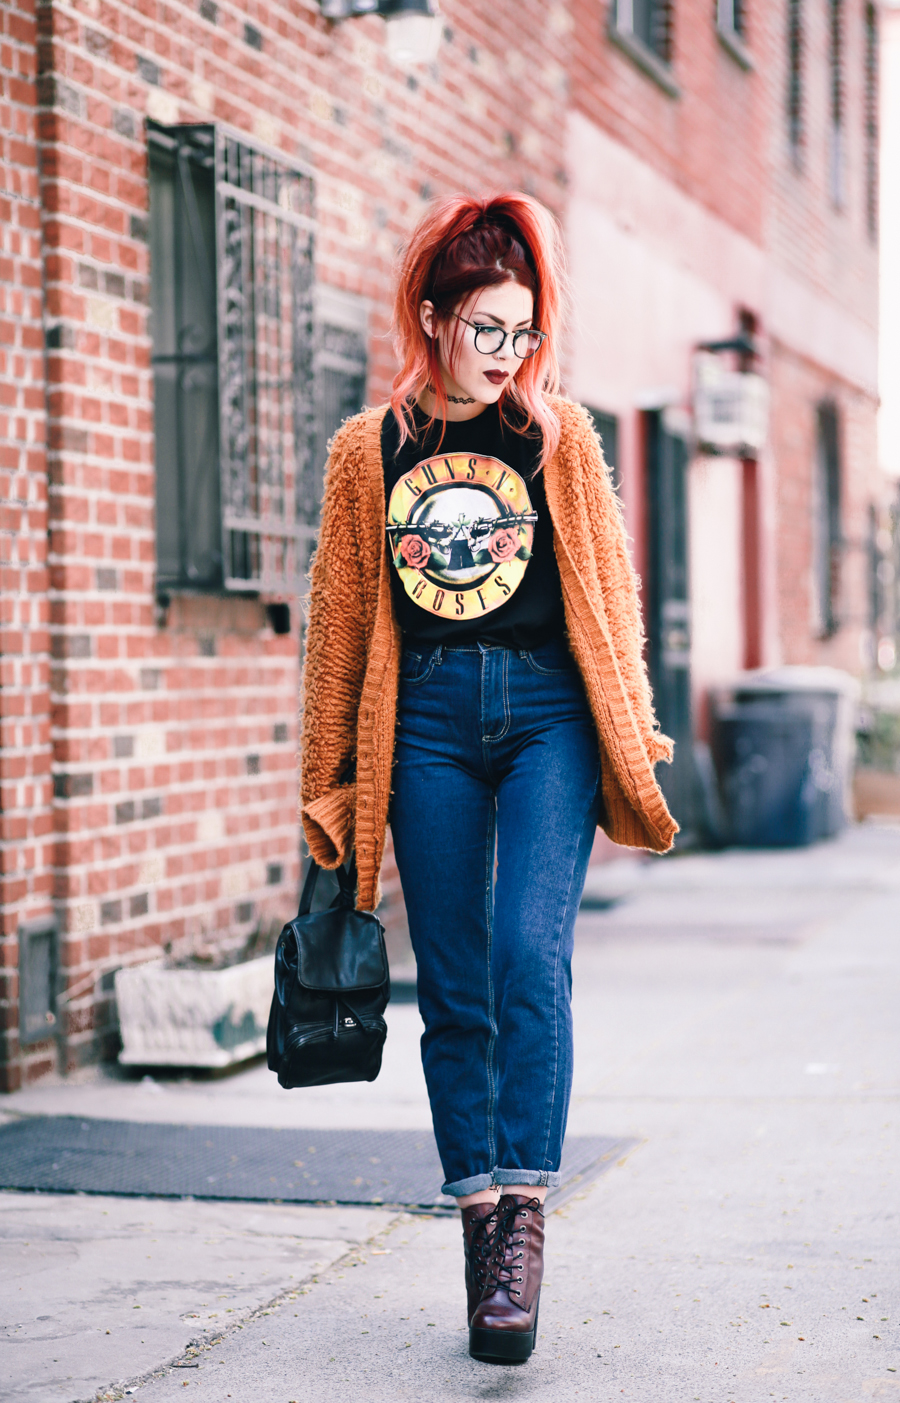 Le Happy wearing Guns n Roses tee and Steve Madden Booties